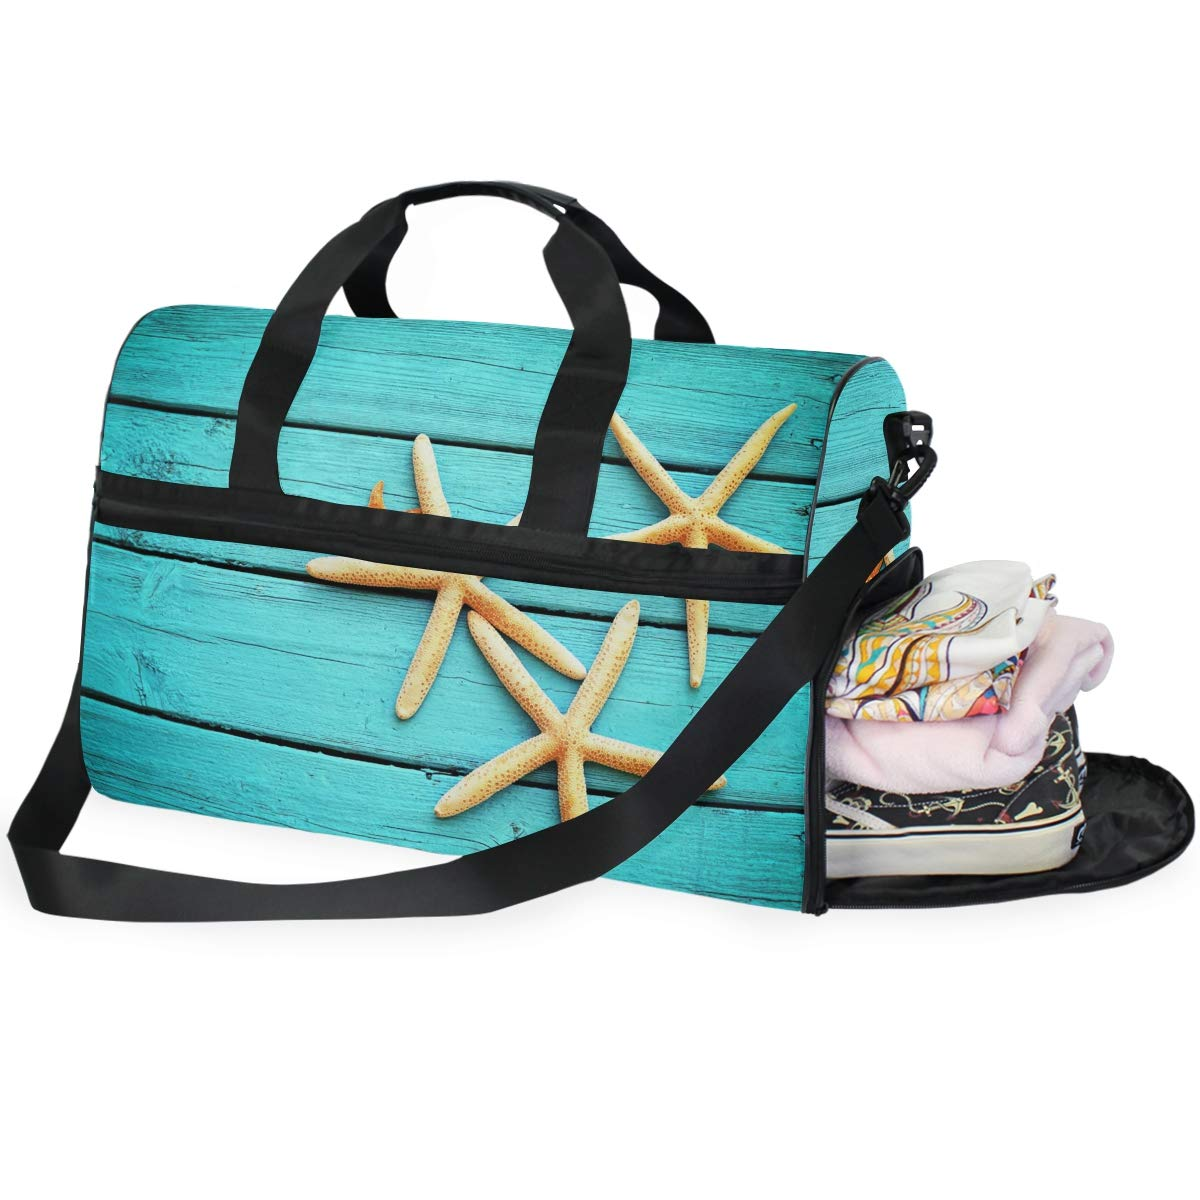 Vacation Gym Travel Duffel Bag Starfish On Blue Waterproof Lightweight Luggage bag for Sports